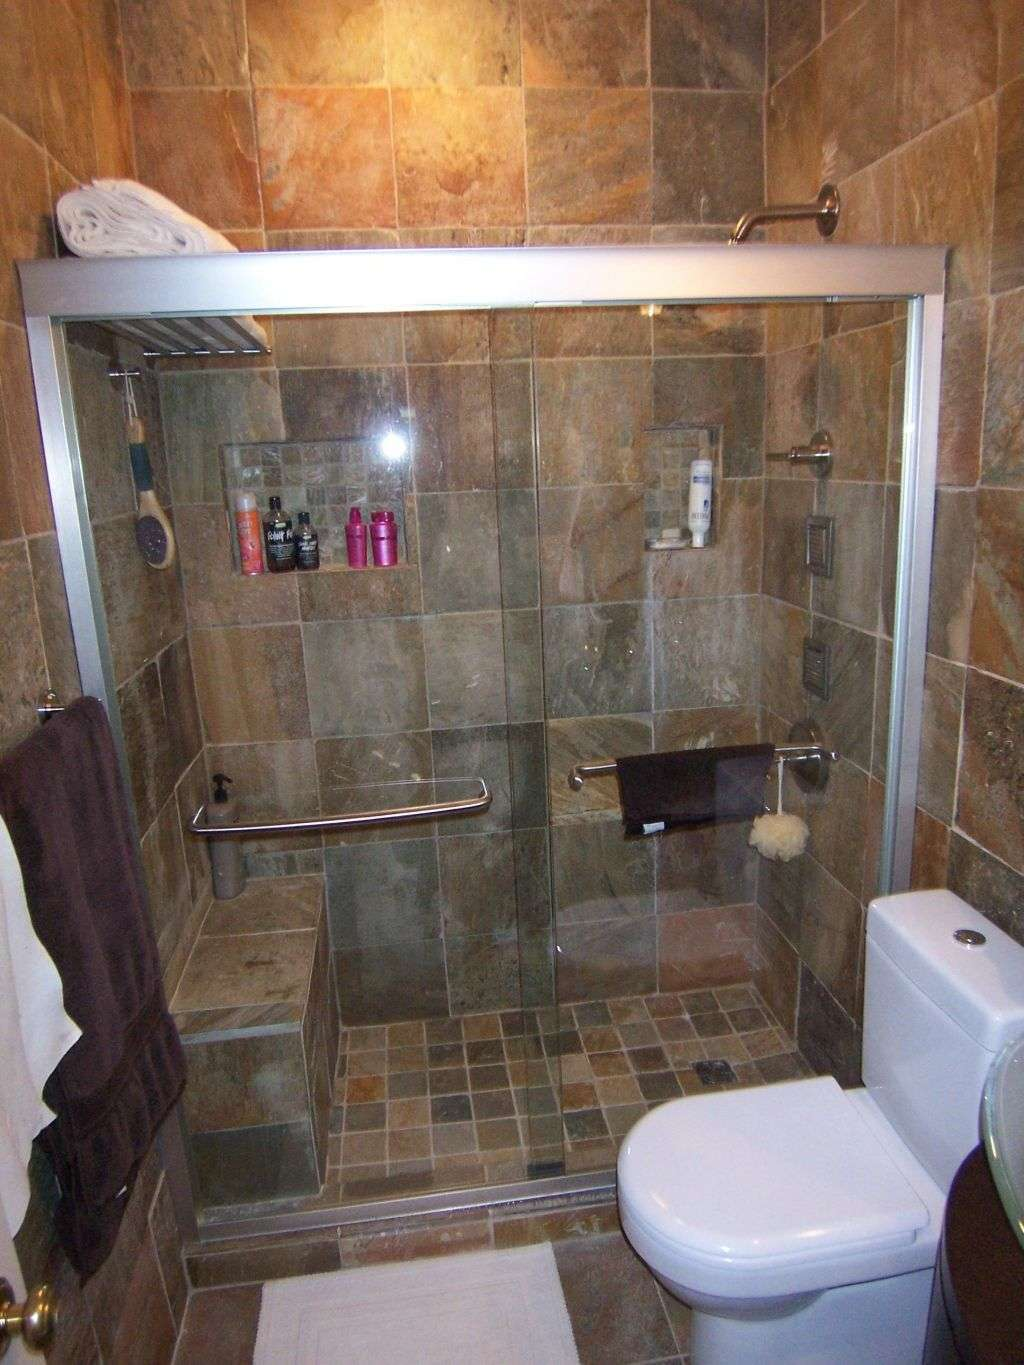 40 wonderful pictures and ideas of 1920s bathroom tile designs for Bathroom remodel design ideas